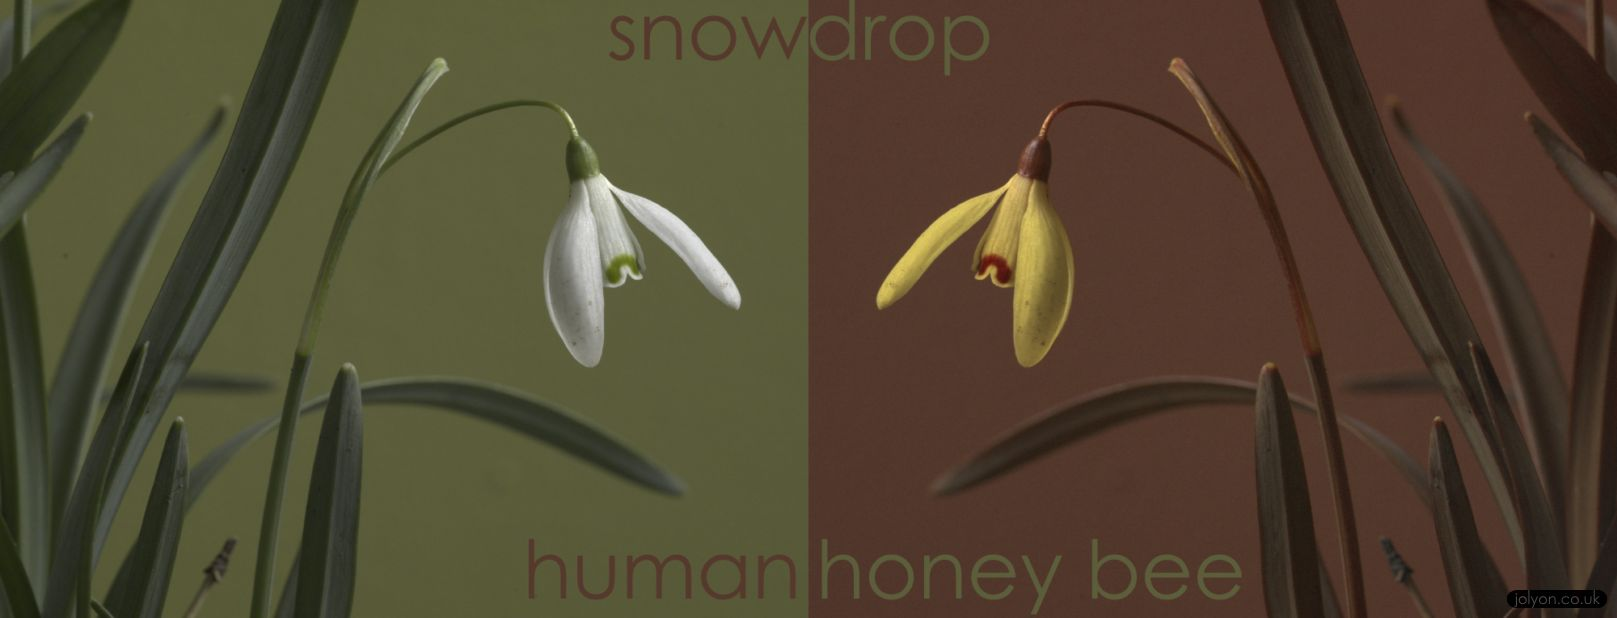 snowdrop uv bee vision